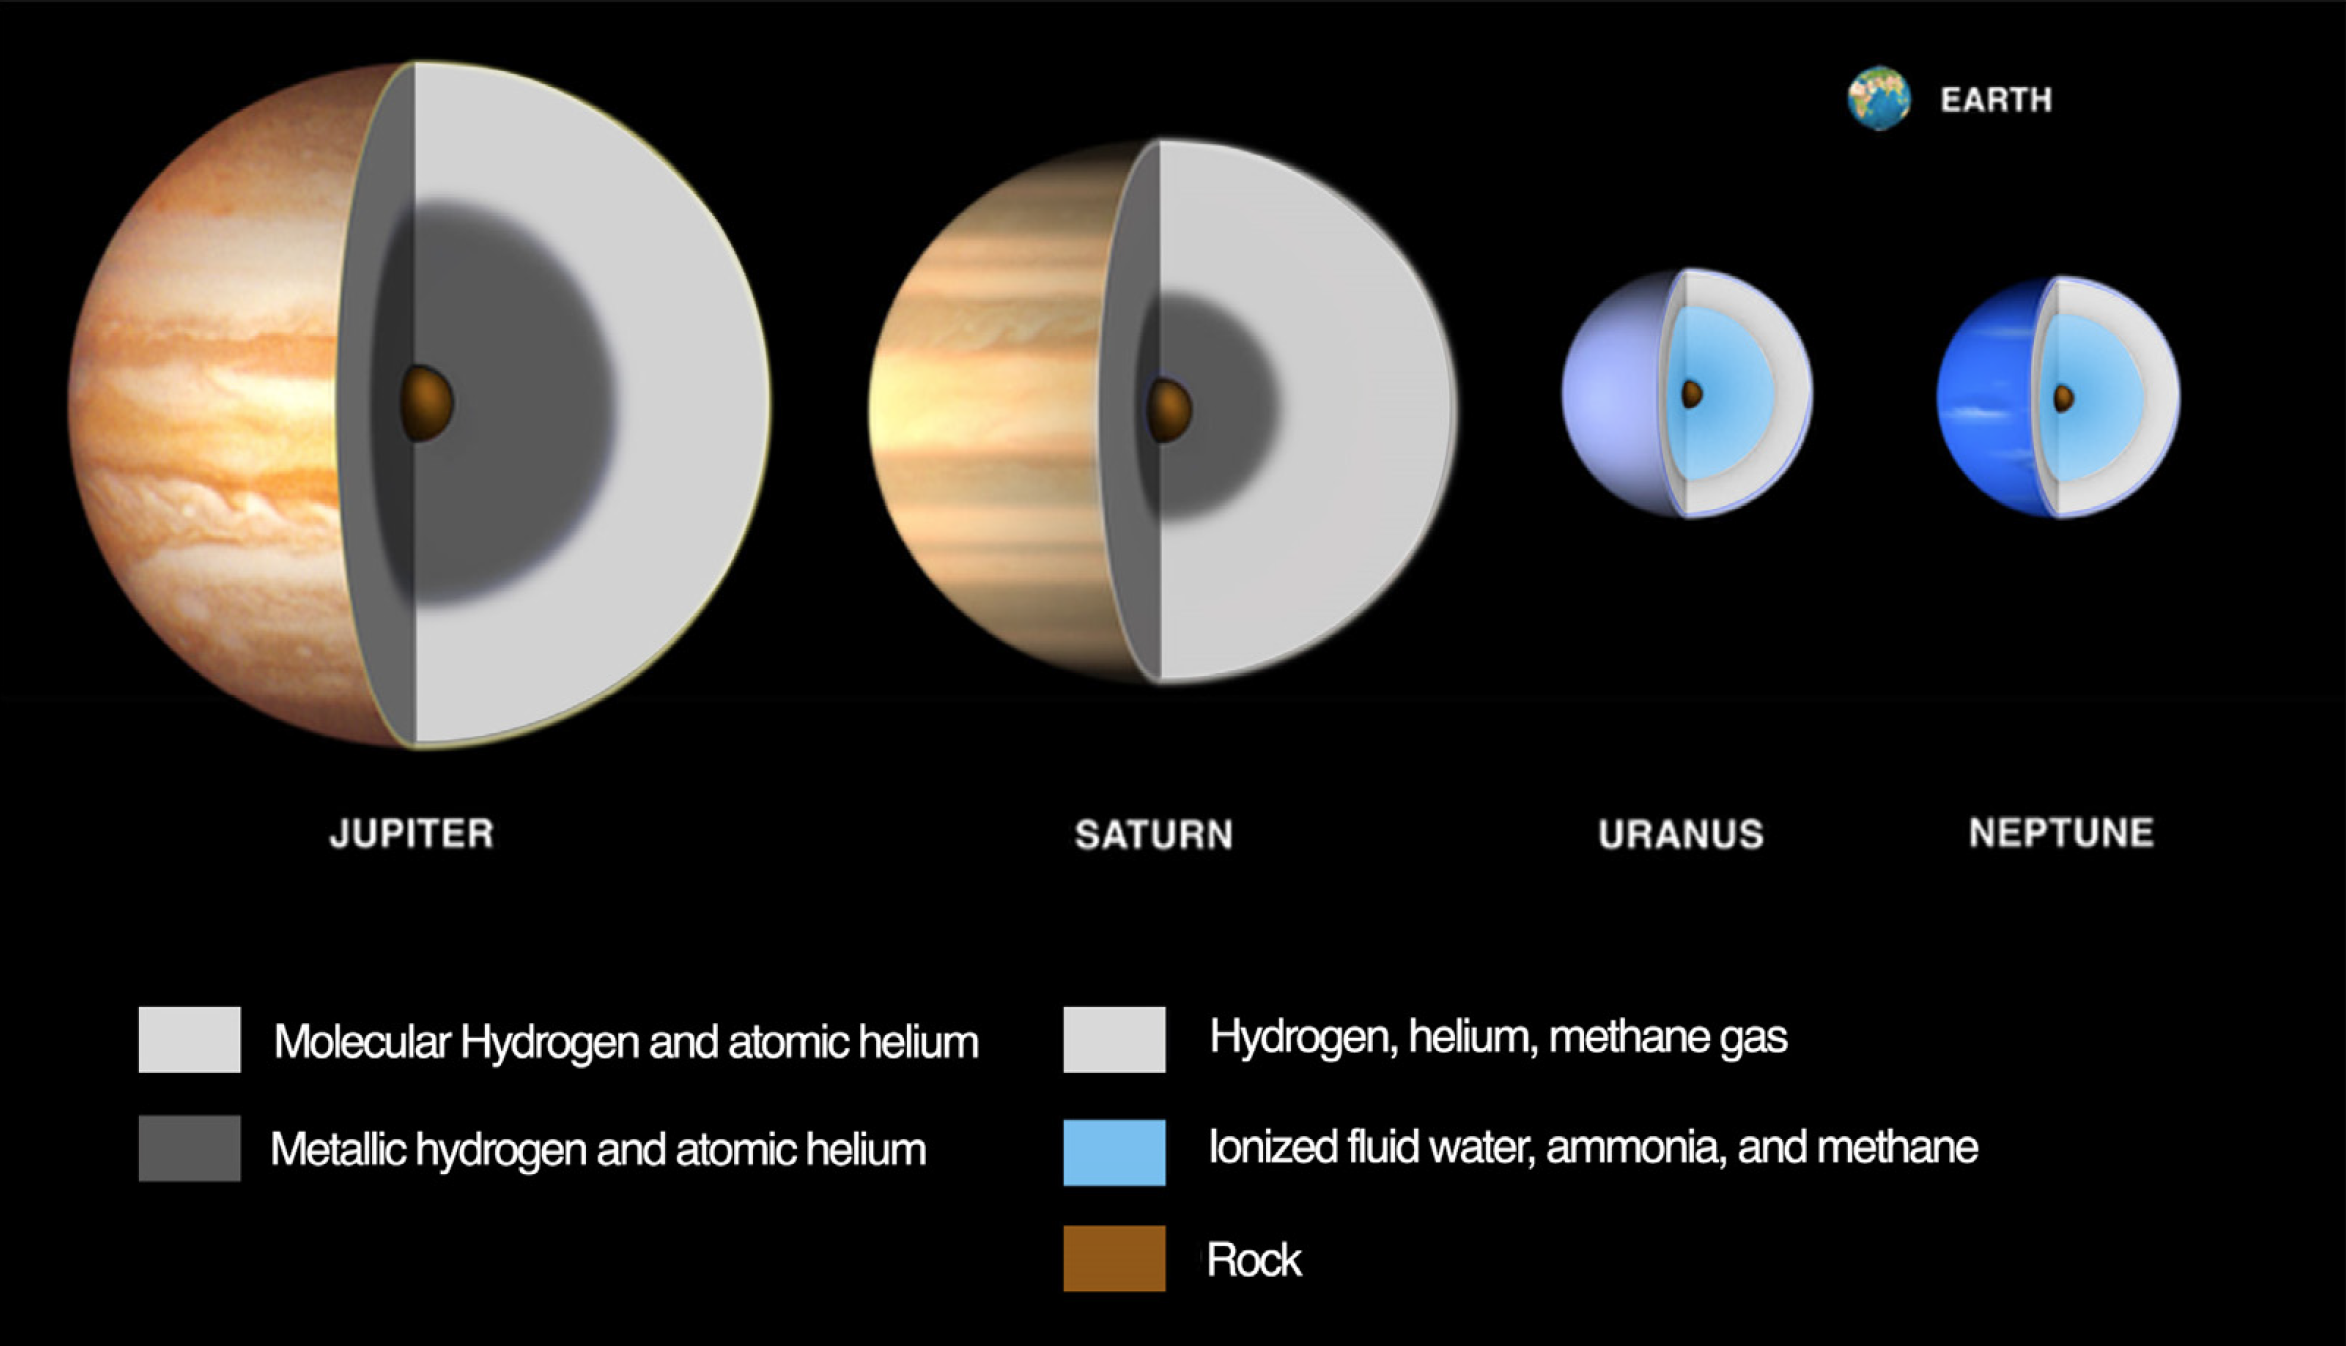 composition of gas giants planets - photo #12